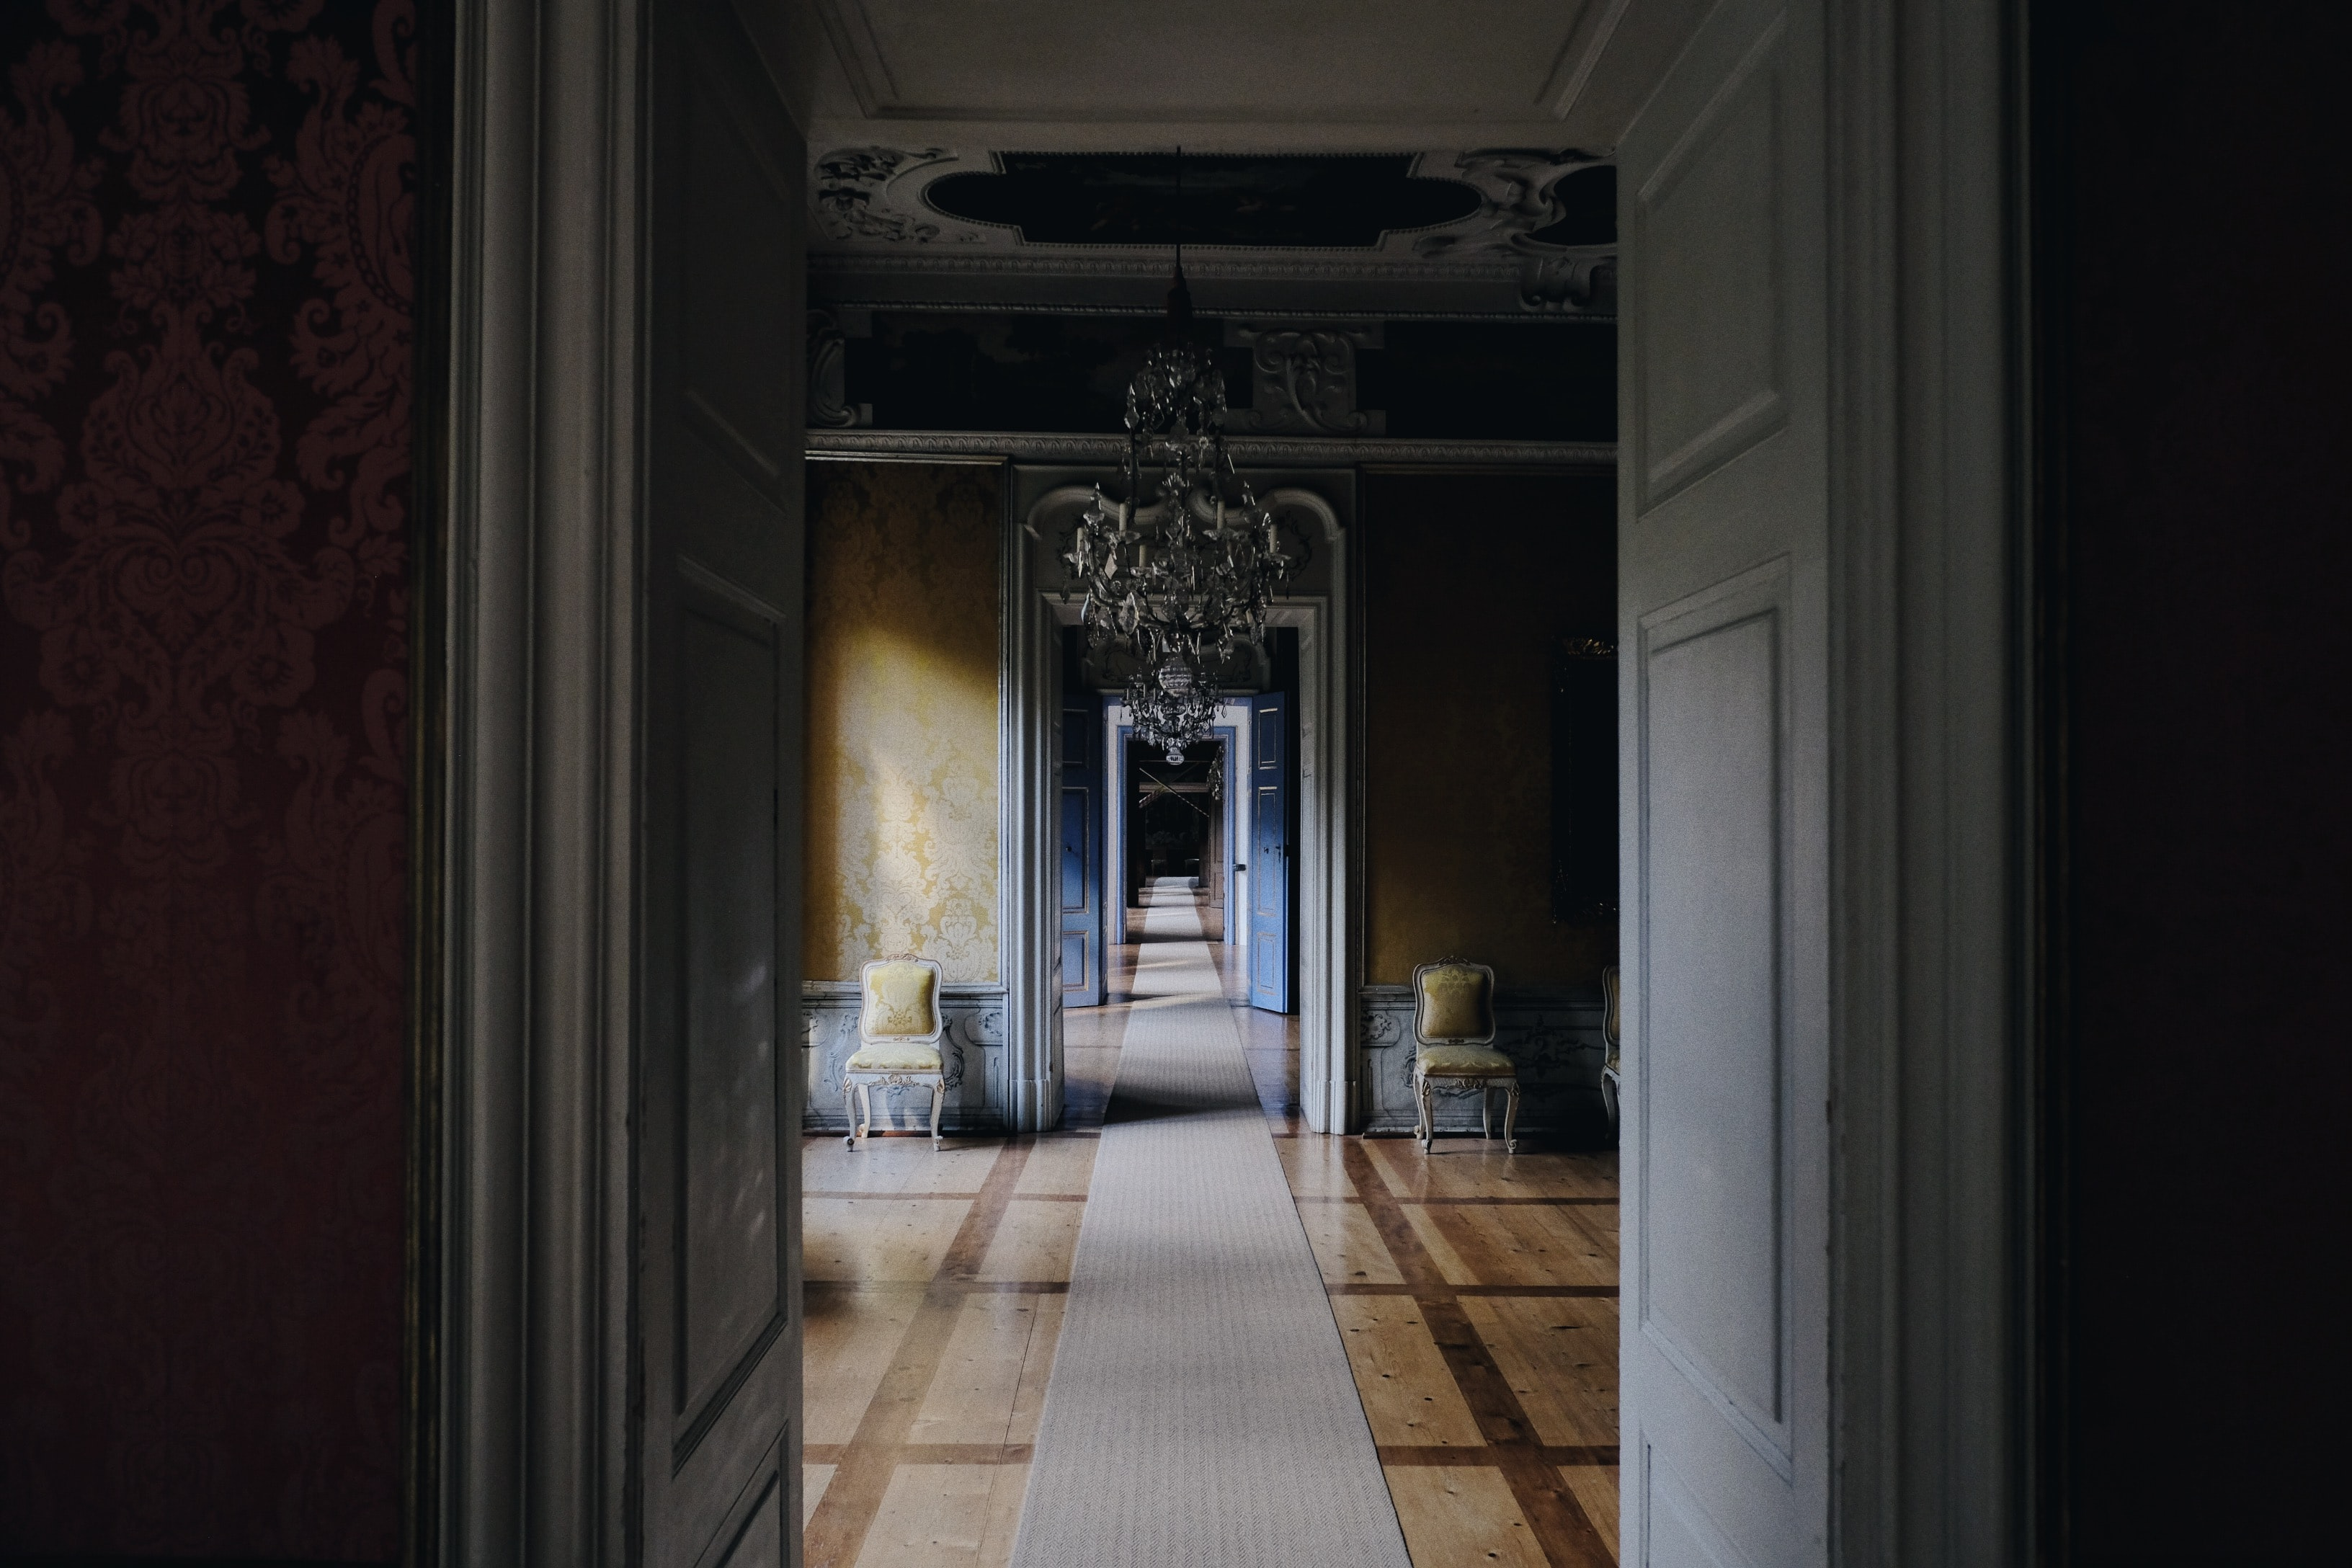 Long hallway through many rooms with a classic style and chandelier in the first room